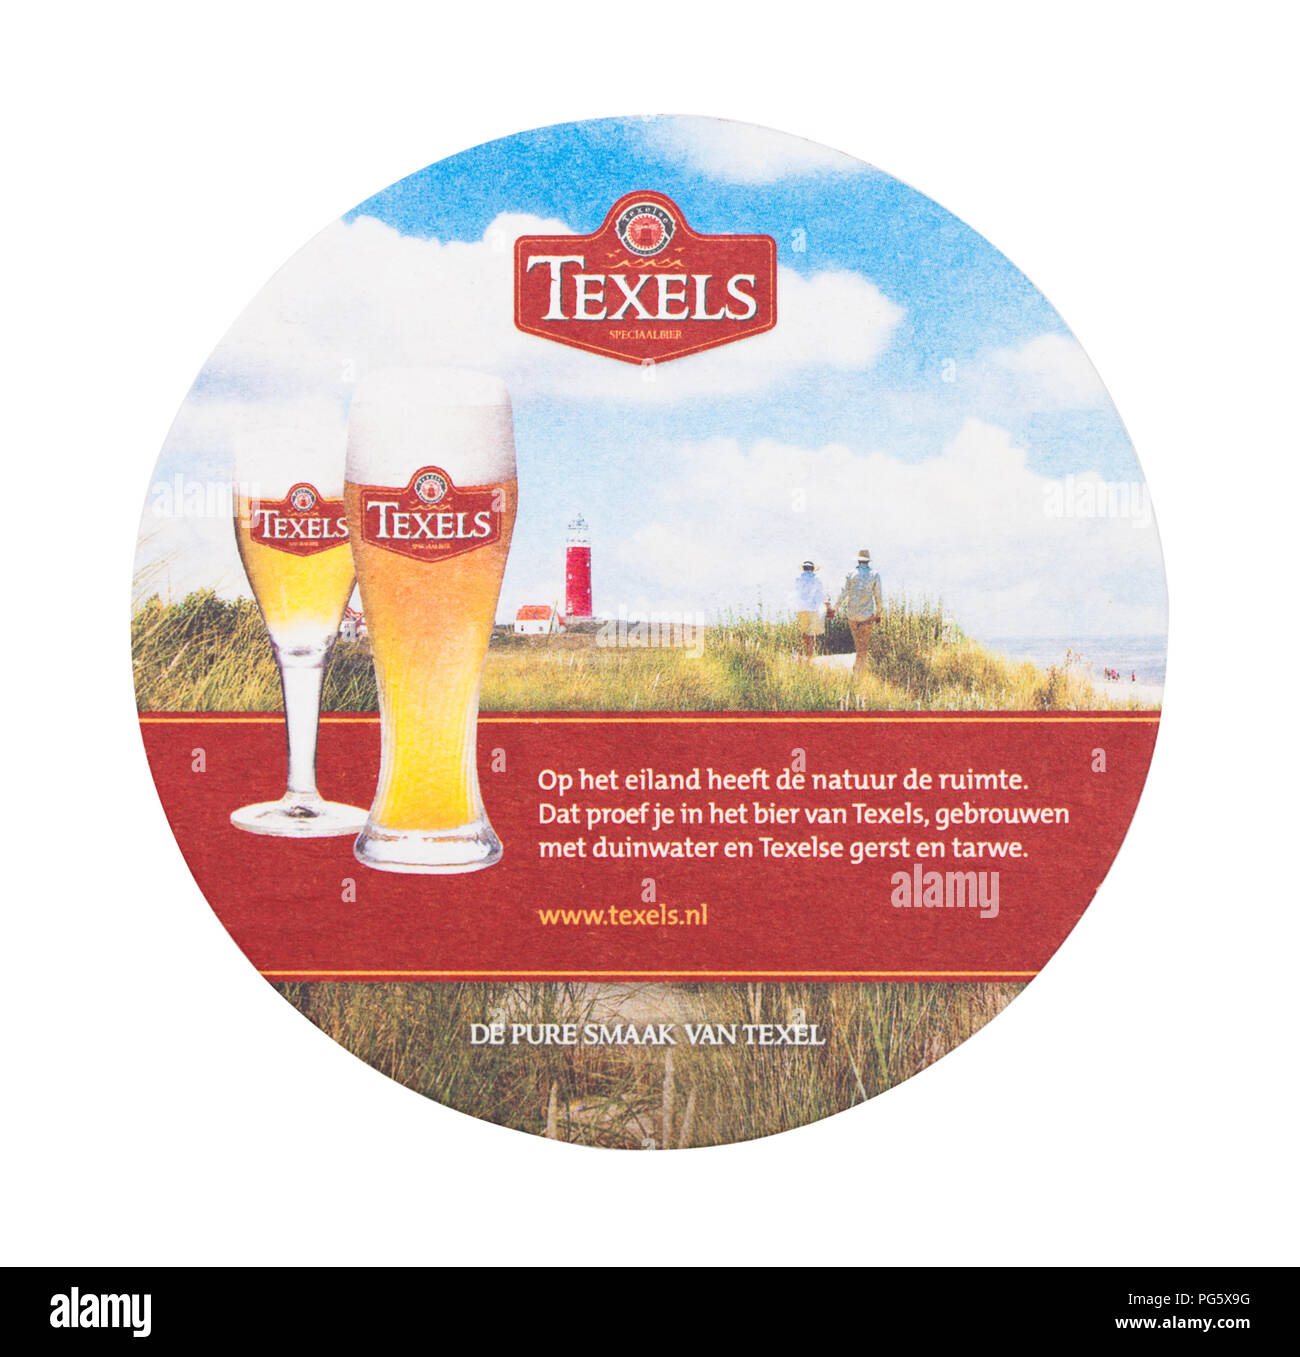 LONDON, UK - AUGUST 22, 2018: Texels paper beer beermat coaster isolated on white background. - Stock Image